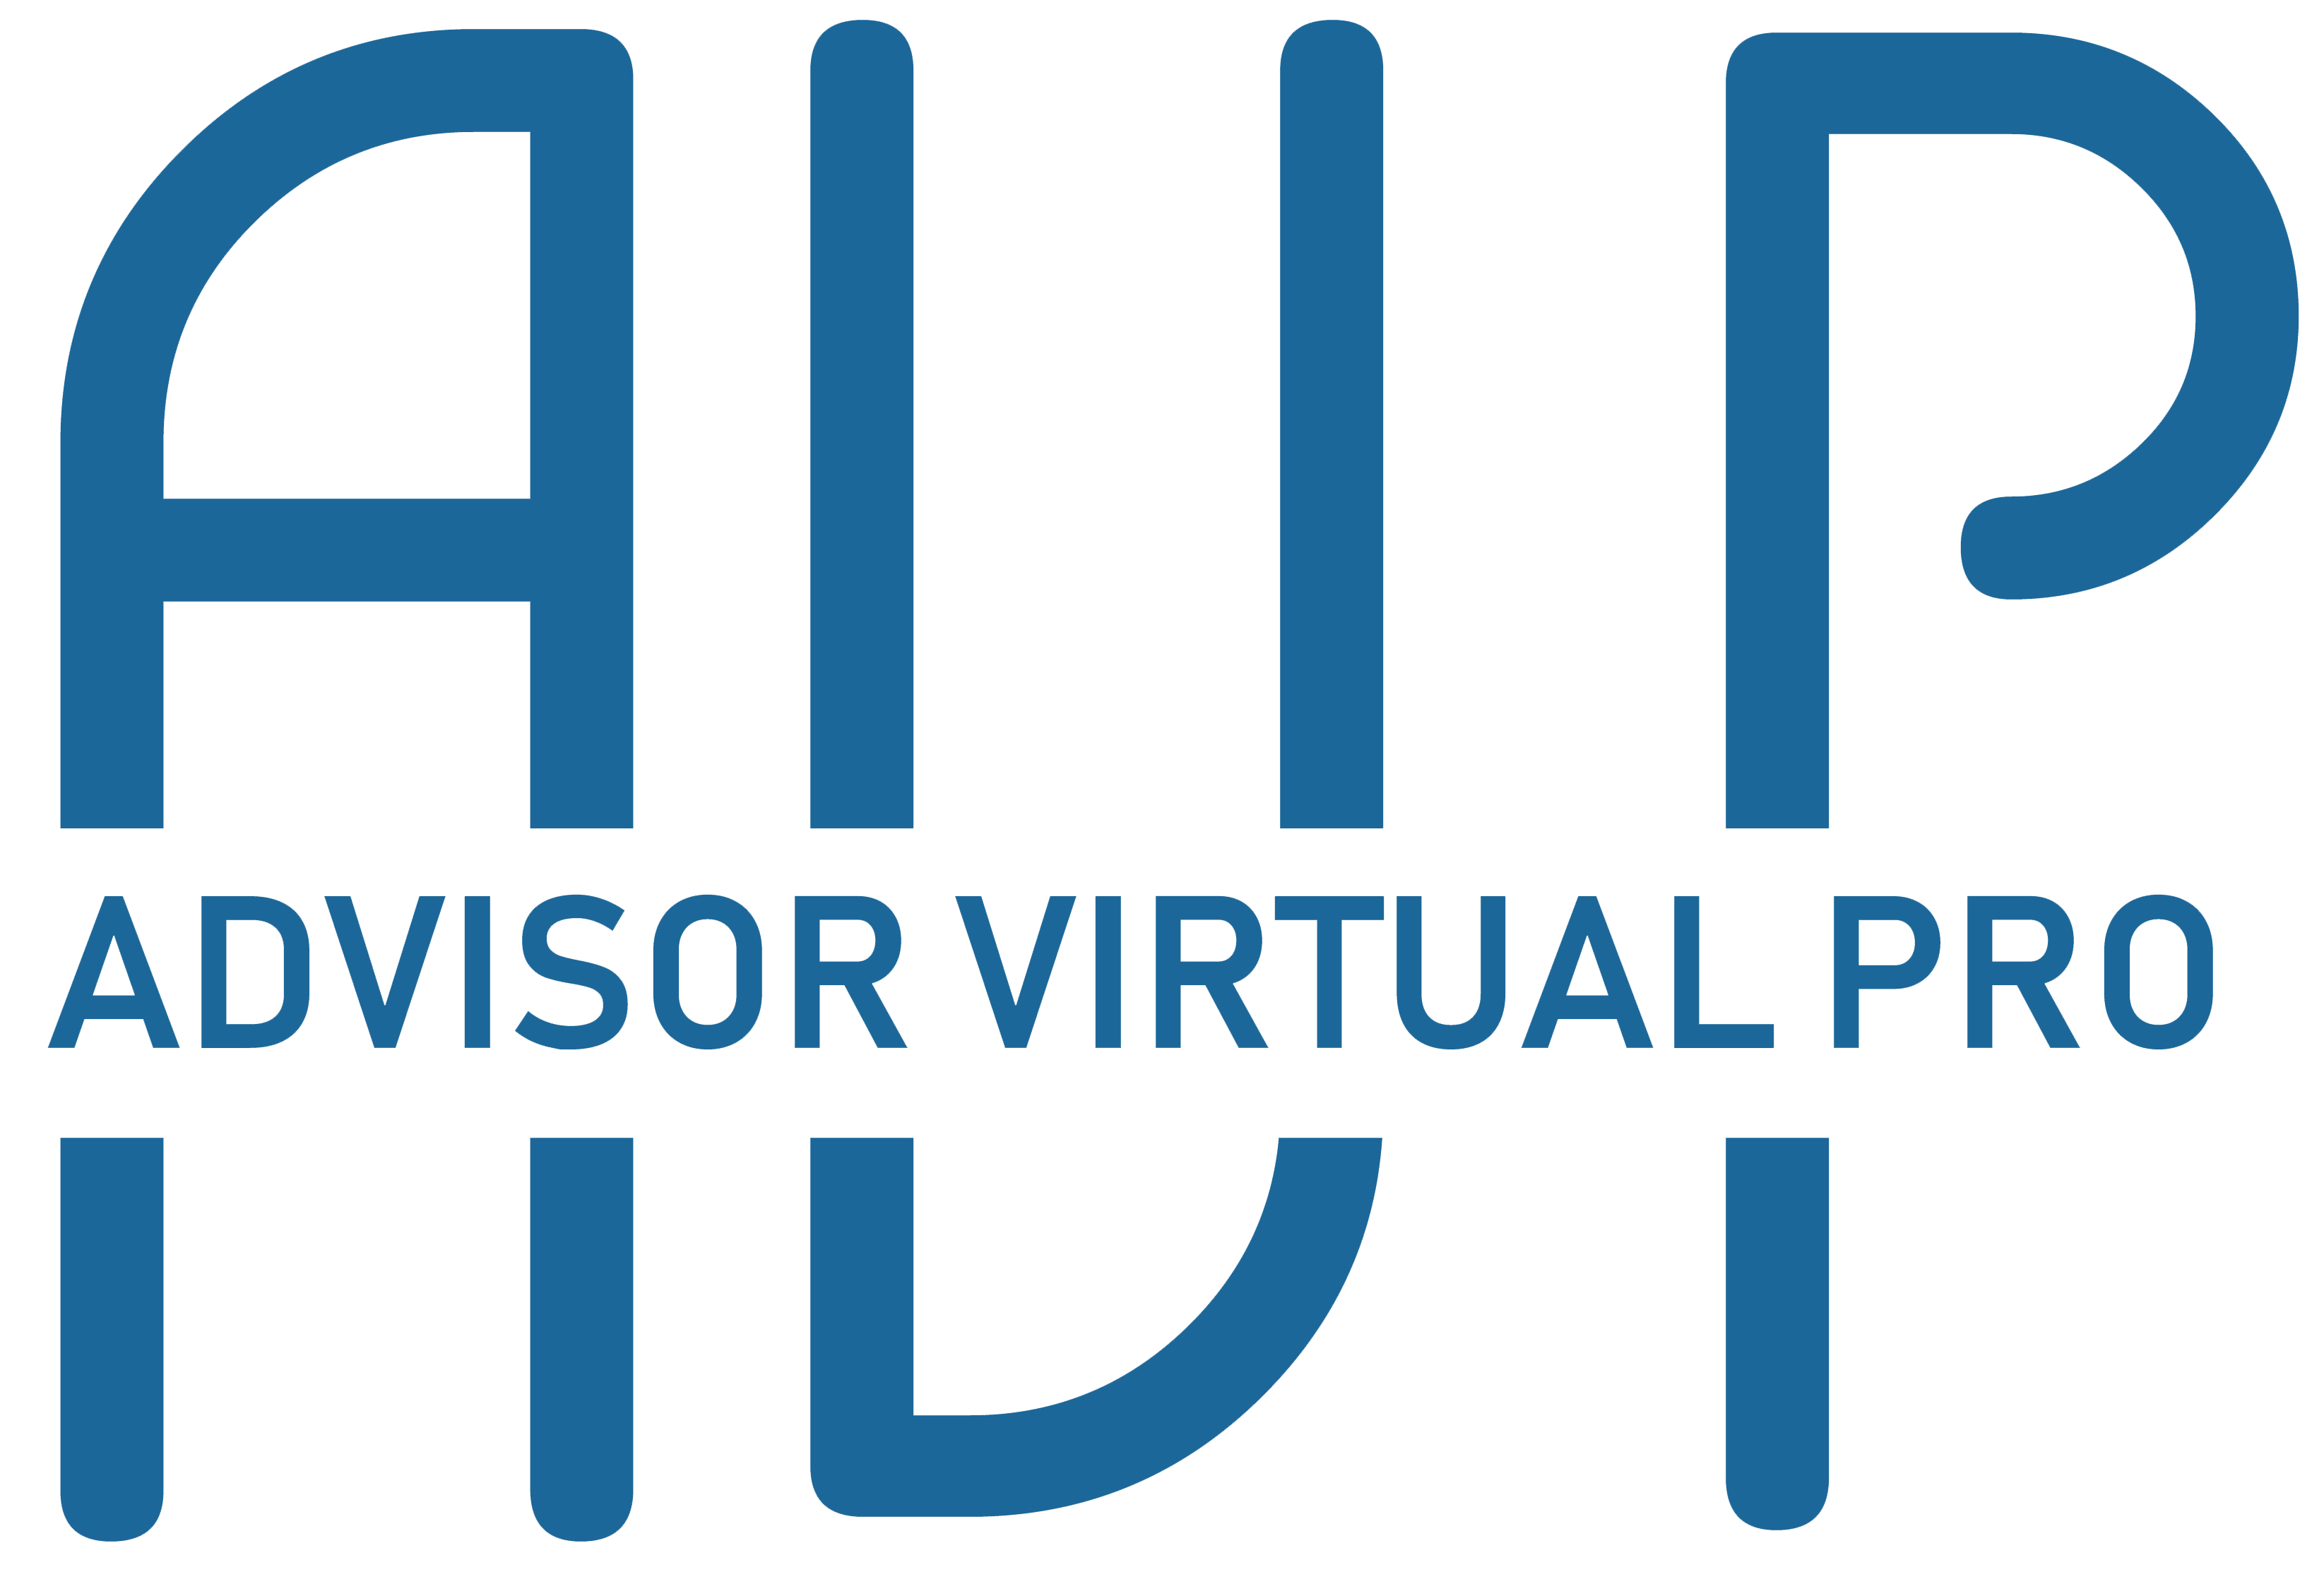 ADVISOR VIRTUAL PRO